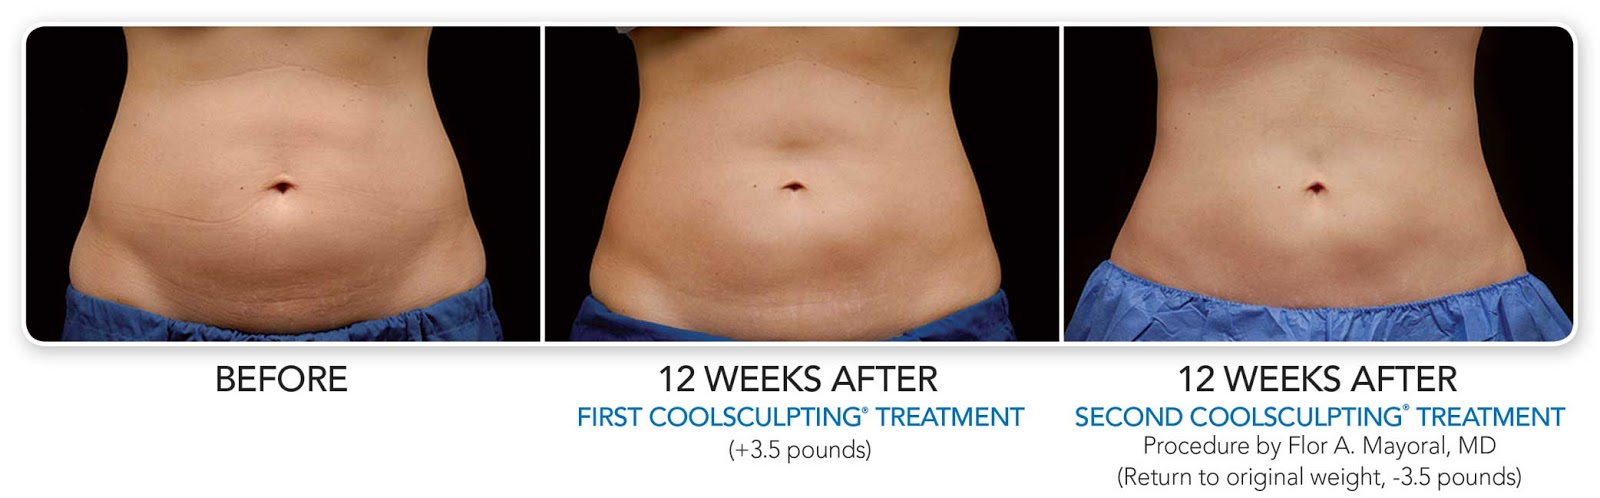 Coolsculpting Lose Weight The Cool Way Without Surgery Redalicerao